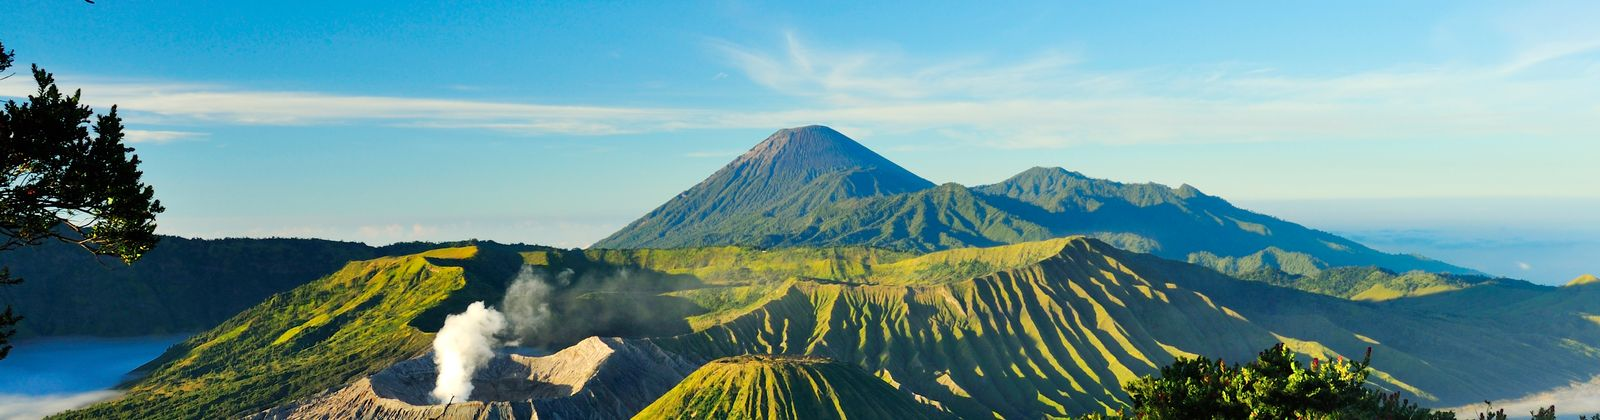 Join the adventure as Skyscanner explores wonderful Indonesia